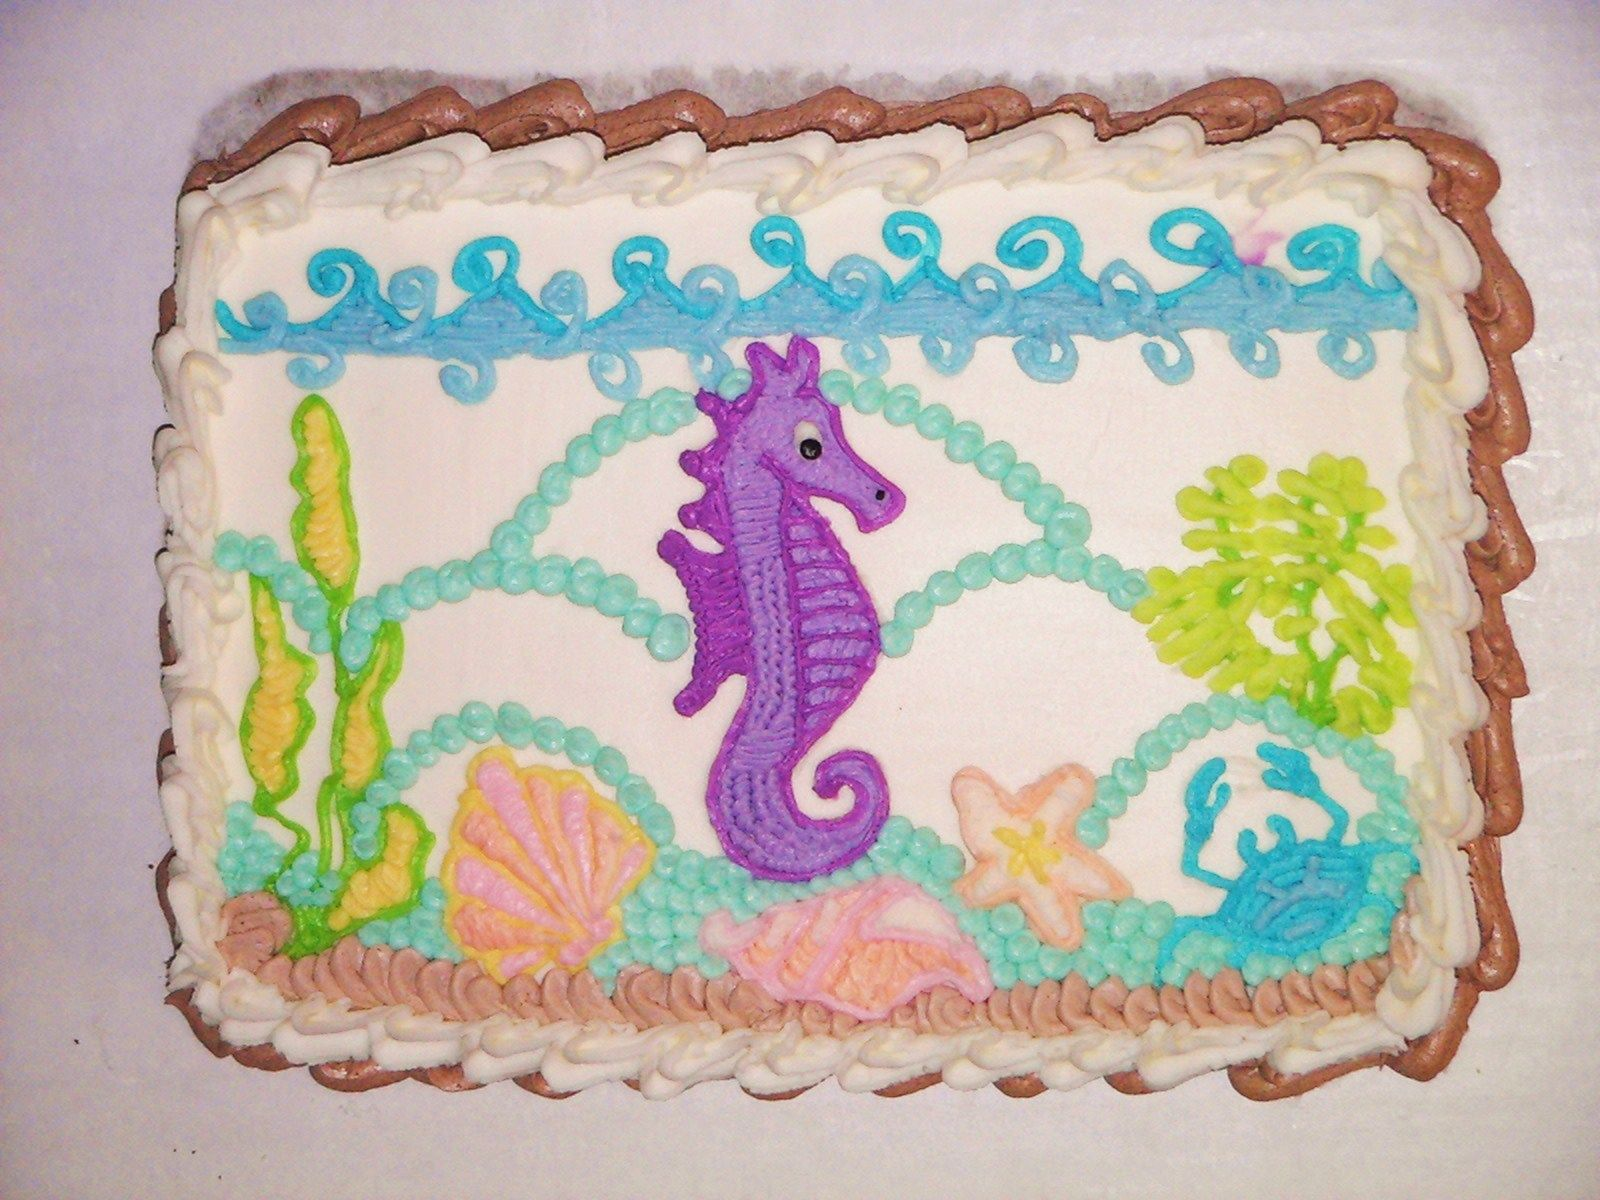 Littlest Pet Shop Seahorse cake tutorial how to make